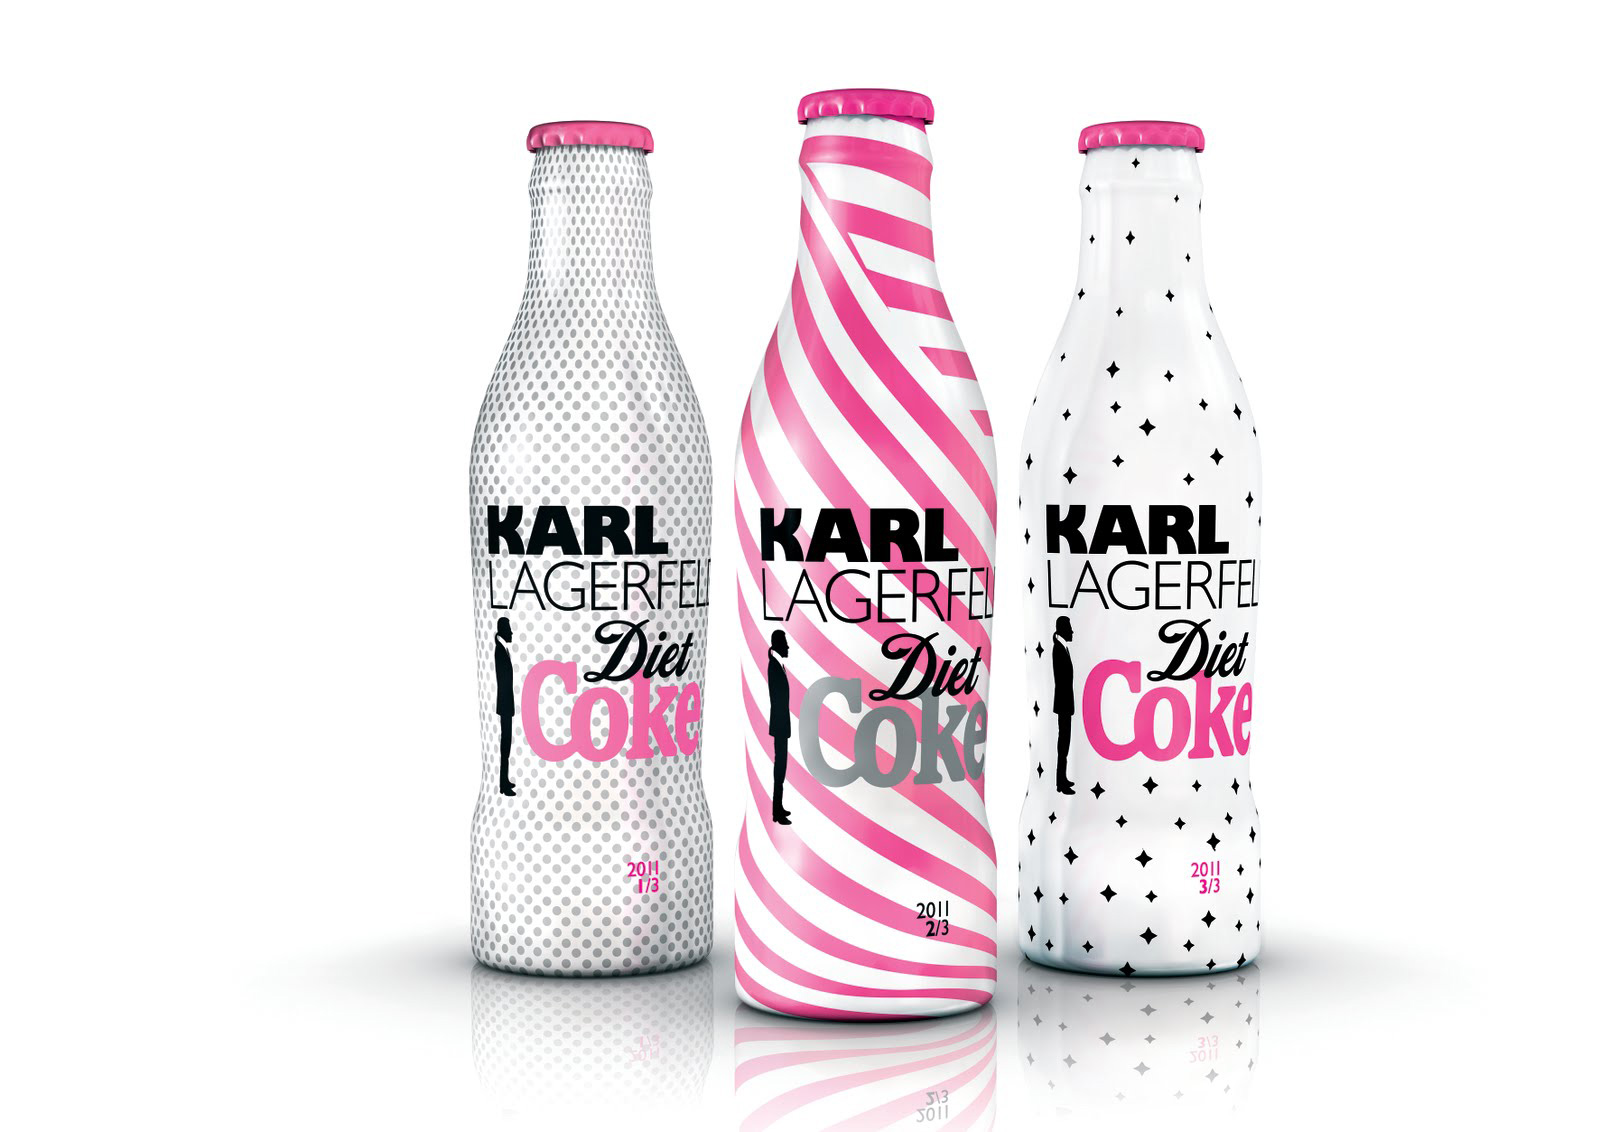 Karl Lagerfeld designs bottles for Diet Coke